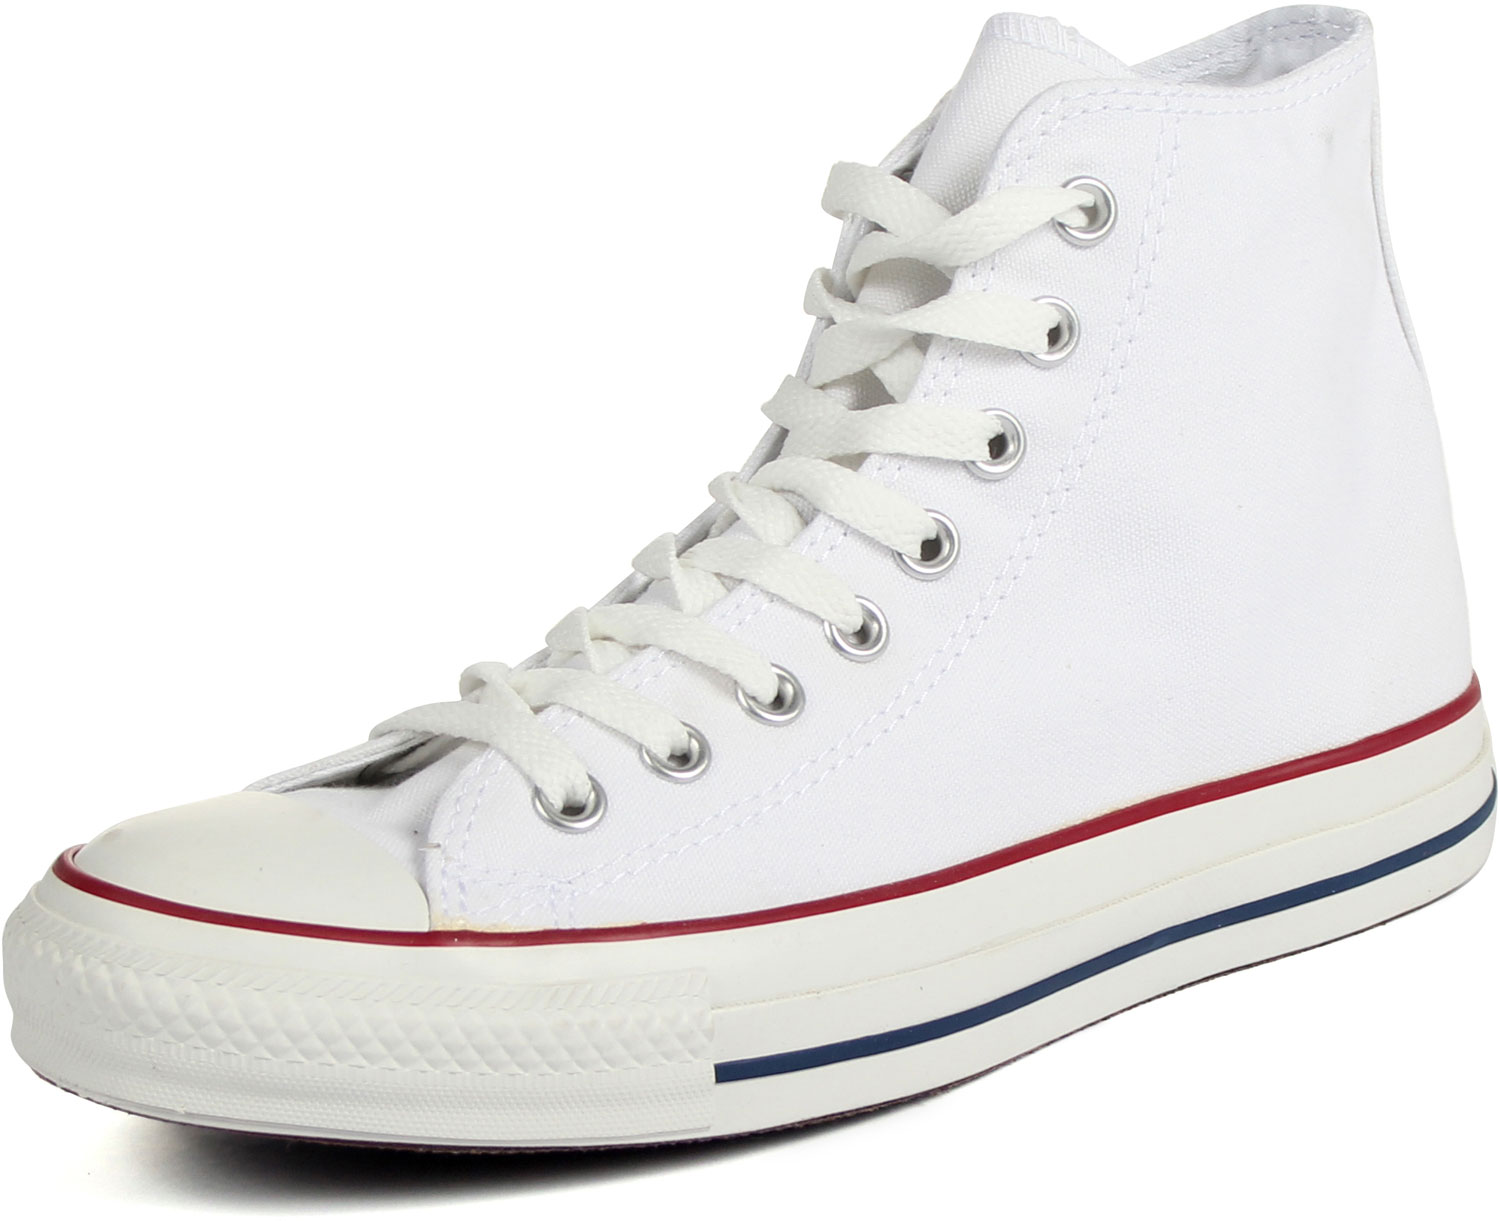 b433eb89508b74 Converse Chuck Taylor All Star Shoes (M7650) Hi Top in Optical White